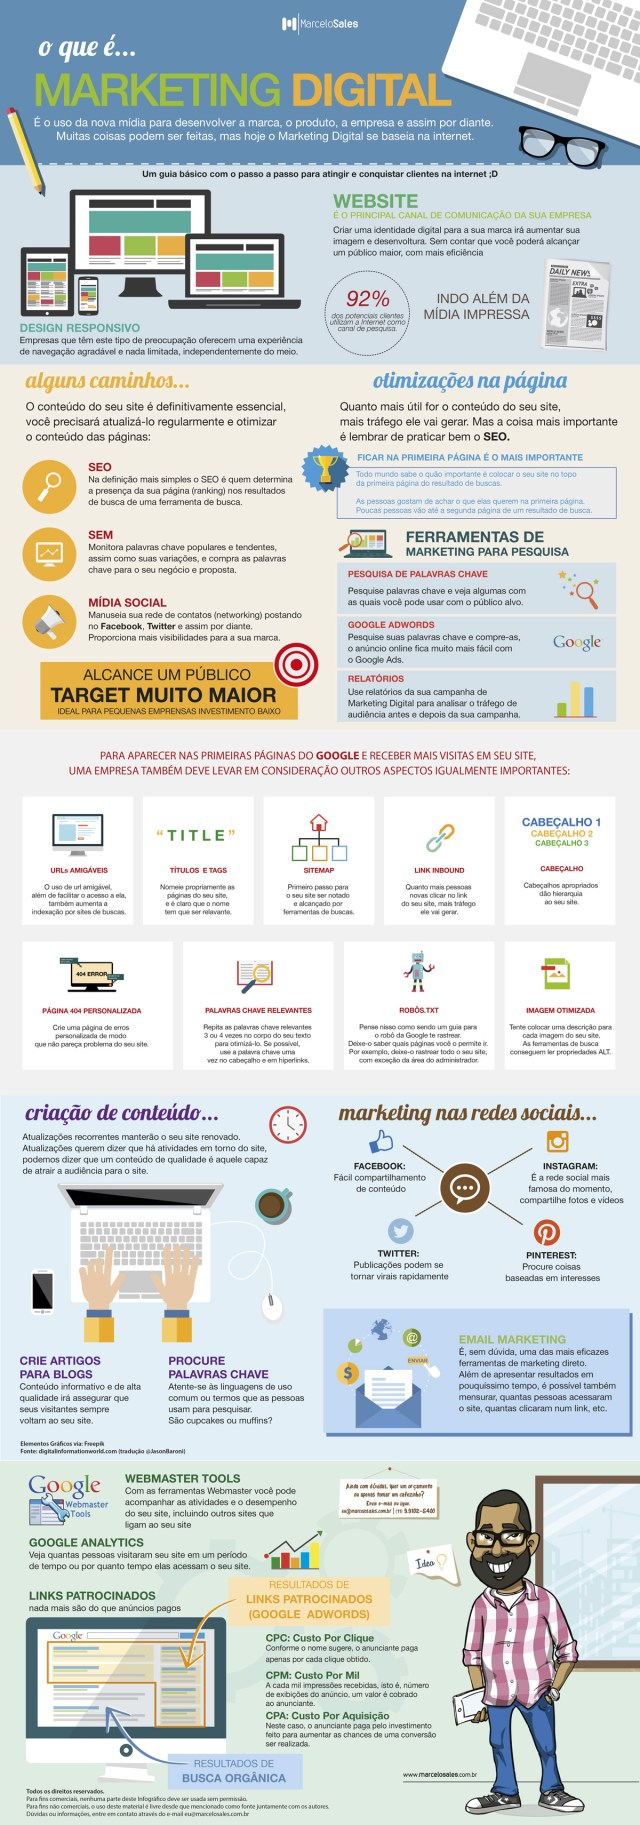 infografico-o-que-e-marketing-digital